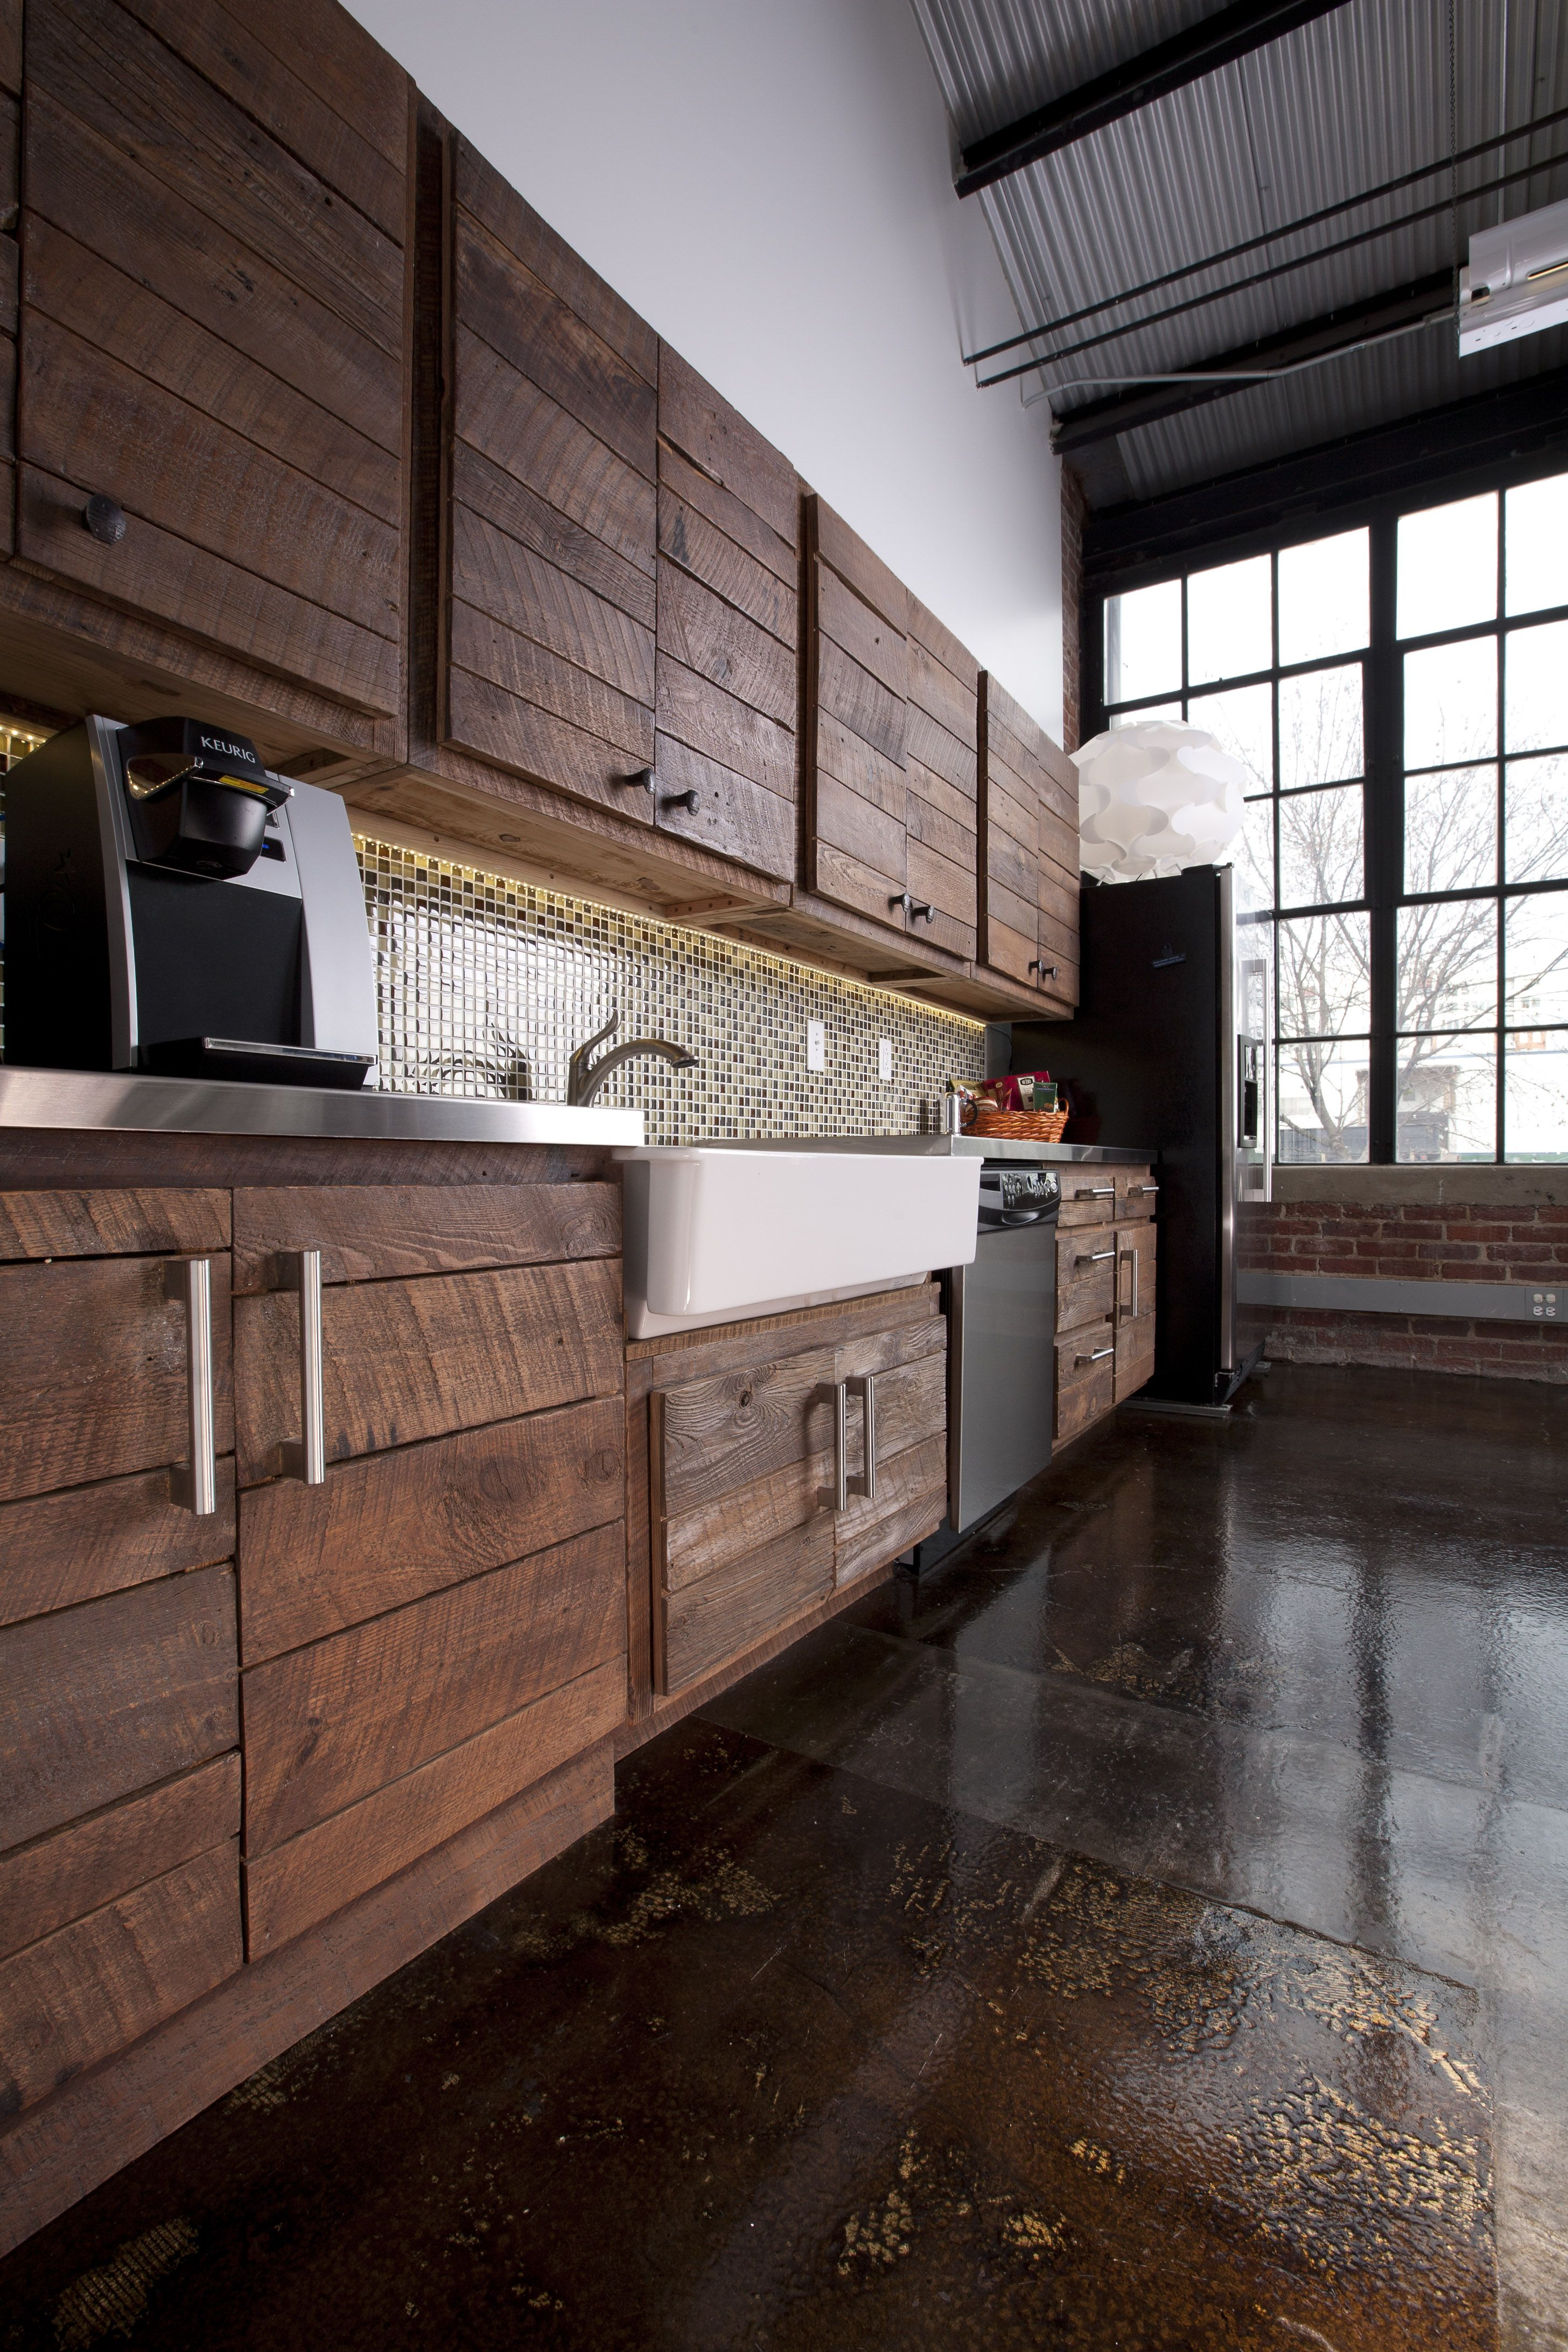 office kitchenette design. office kitchen: look at those gorgeous floors and cabinets! kitchenette design